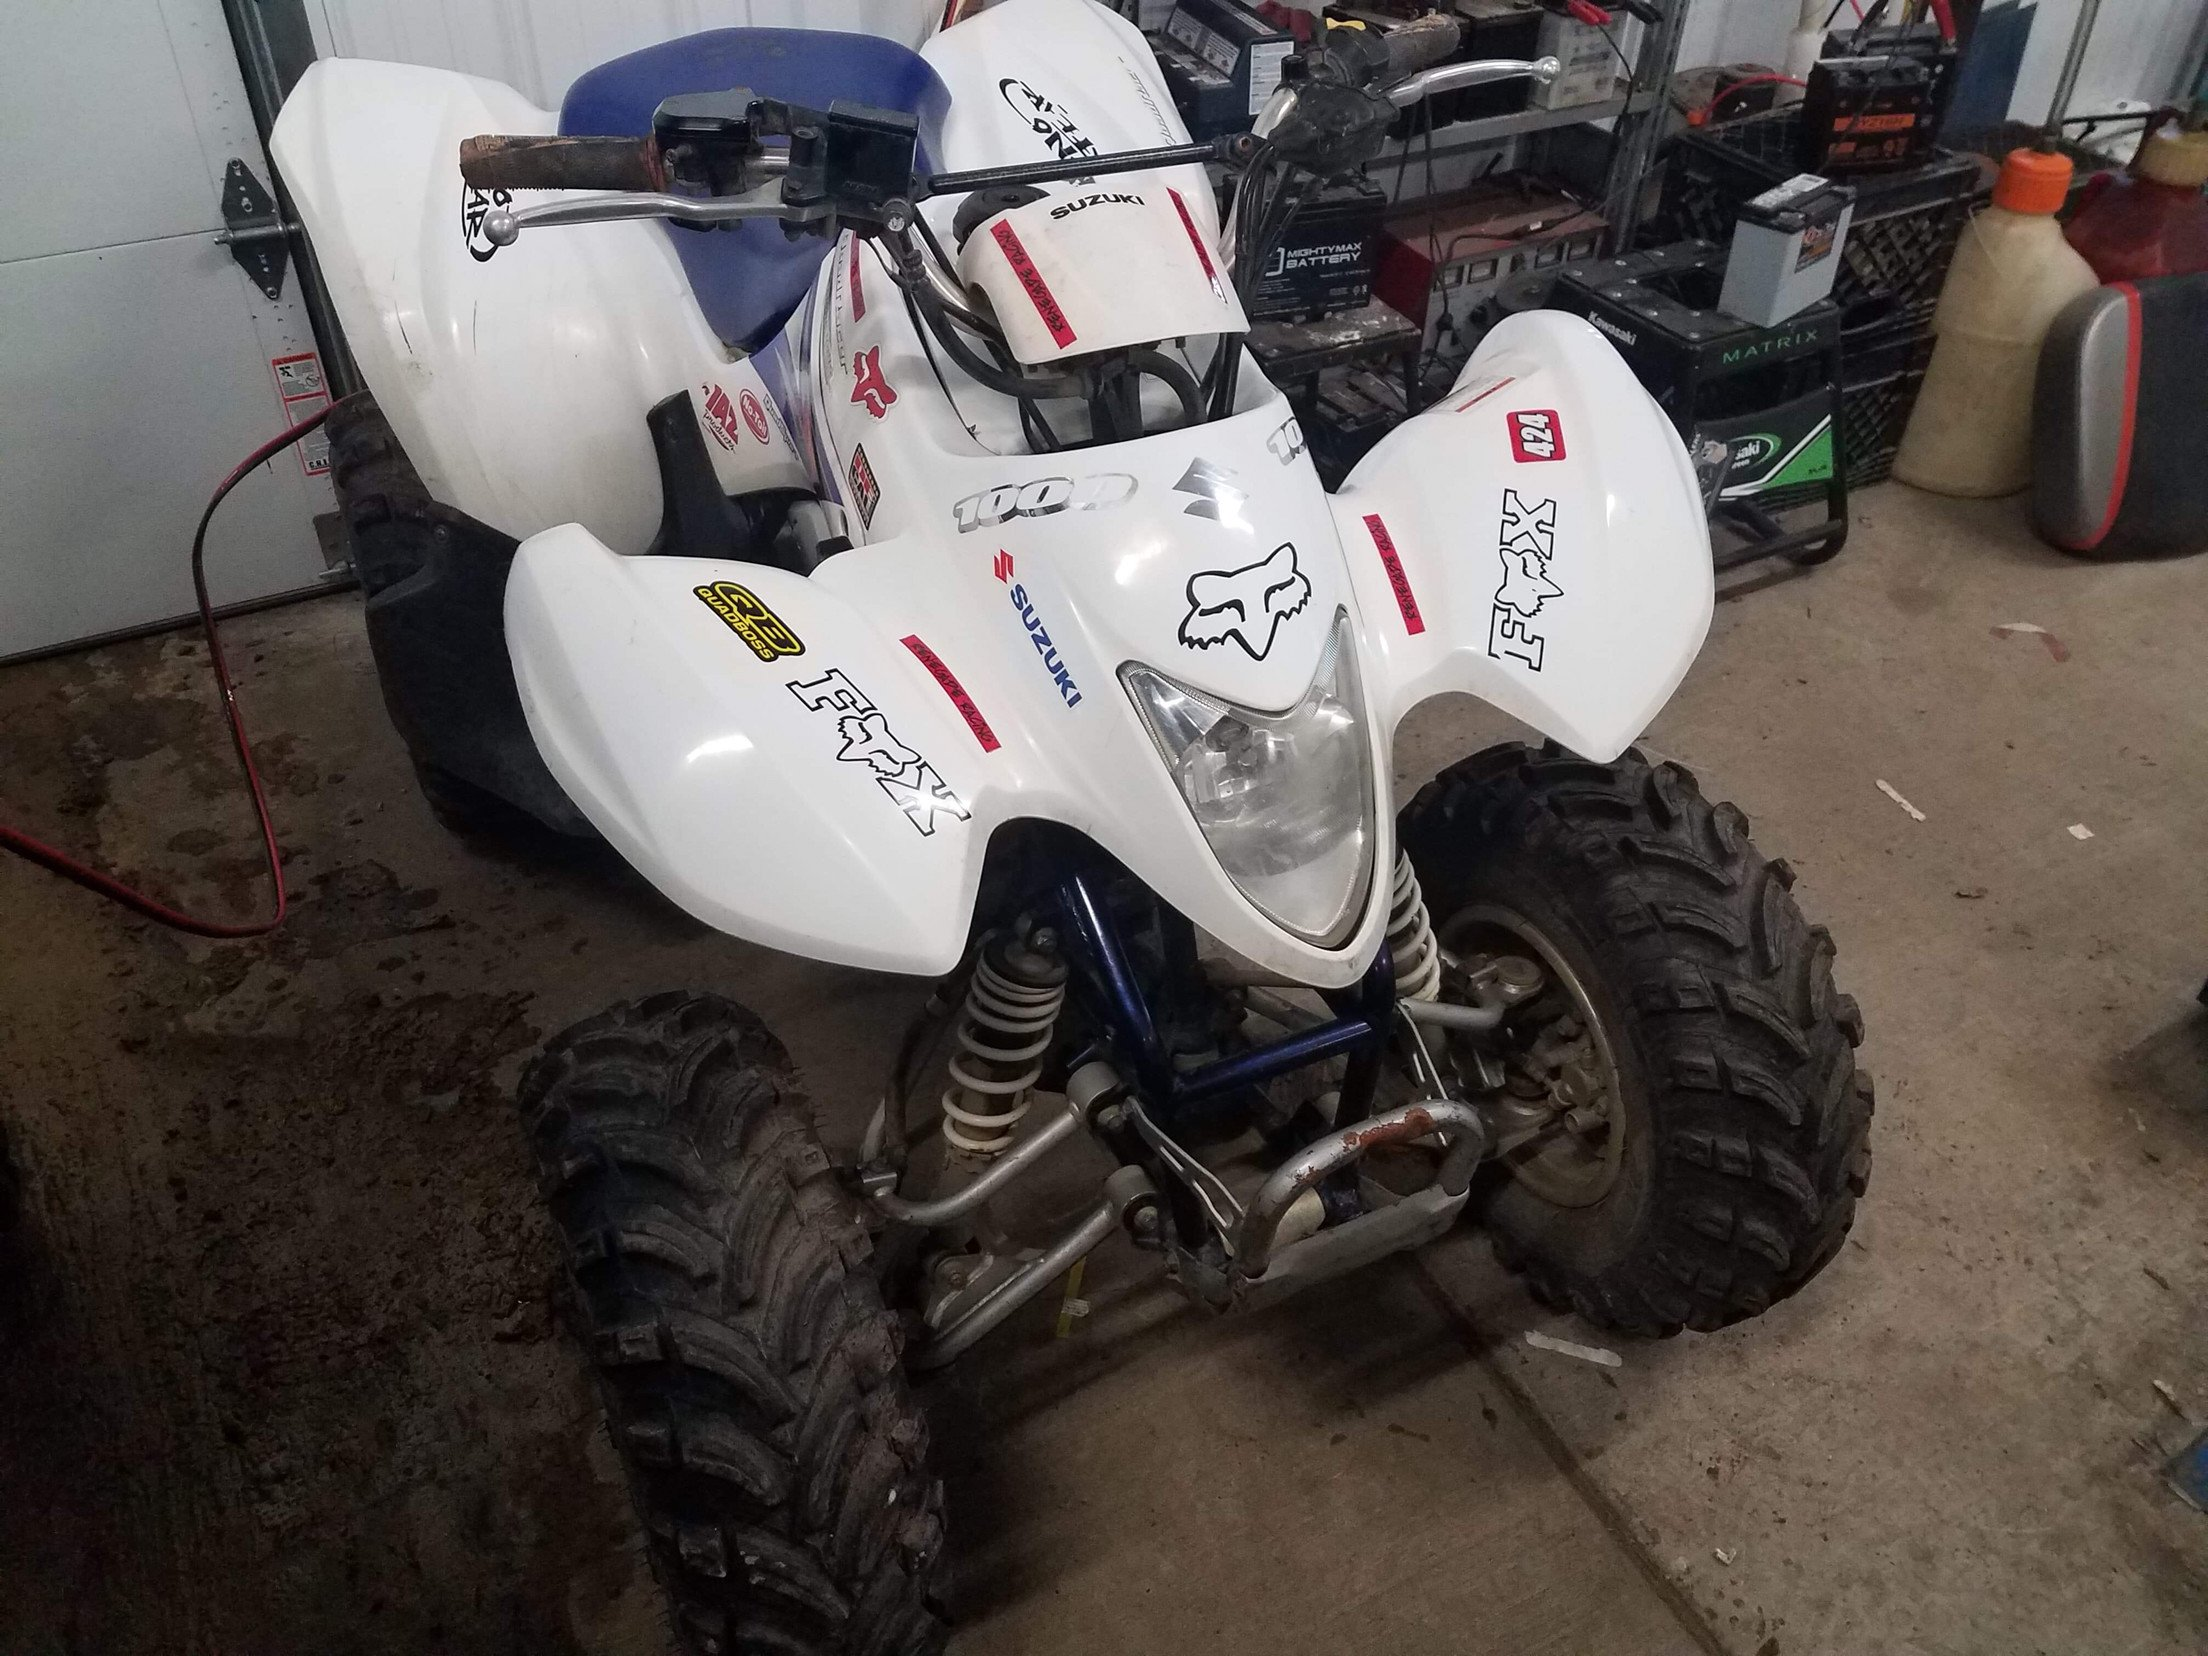 2006 Suzuki Quadsport 250 Motorcycles For Sale Motorcycles On